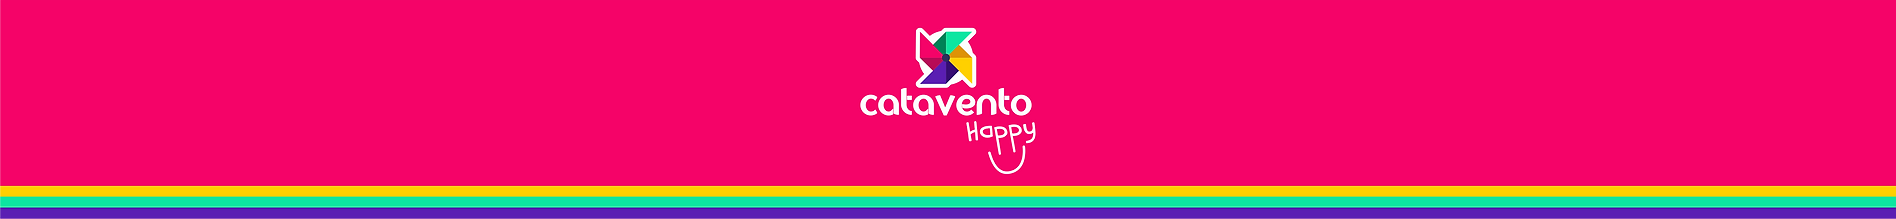 Catavento Happy.png